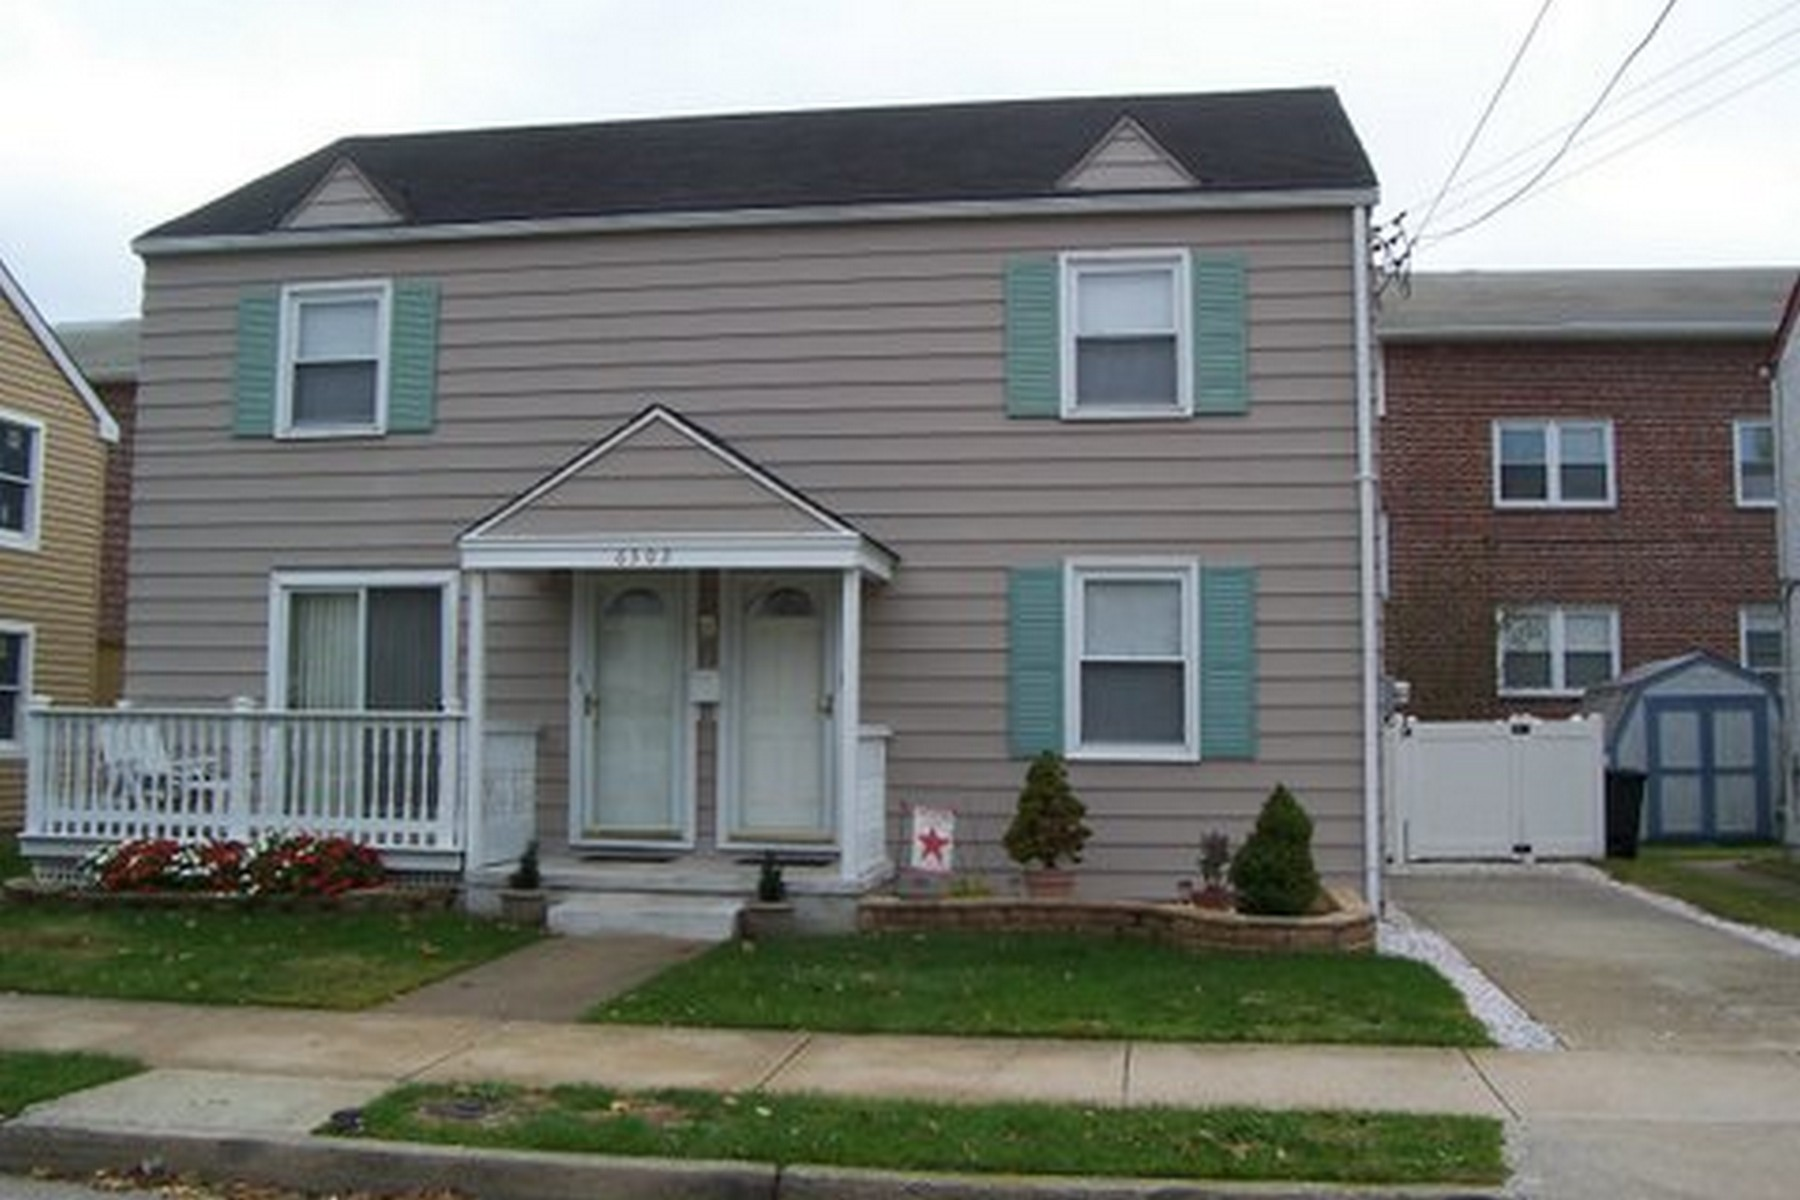 Duplex for Rent at 6302 Winchester Ave, First Floor 6302 Winchester Ave First Floor, Ventnor, New Jersey 08406 United States